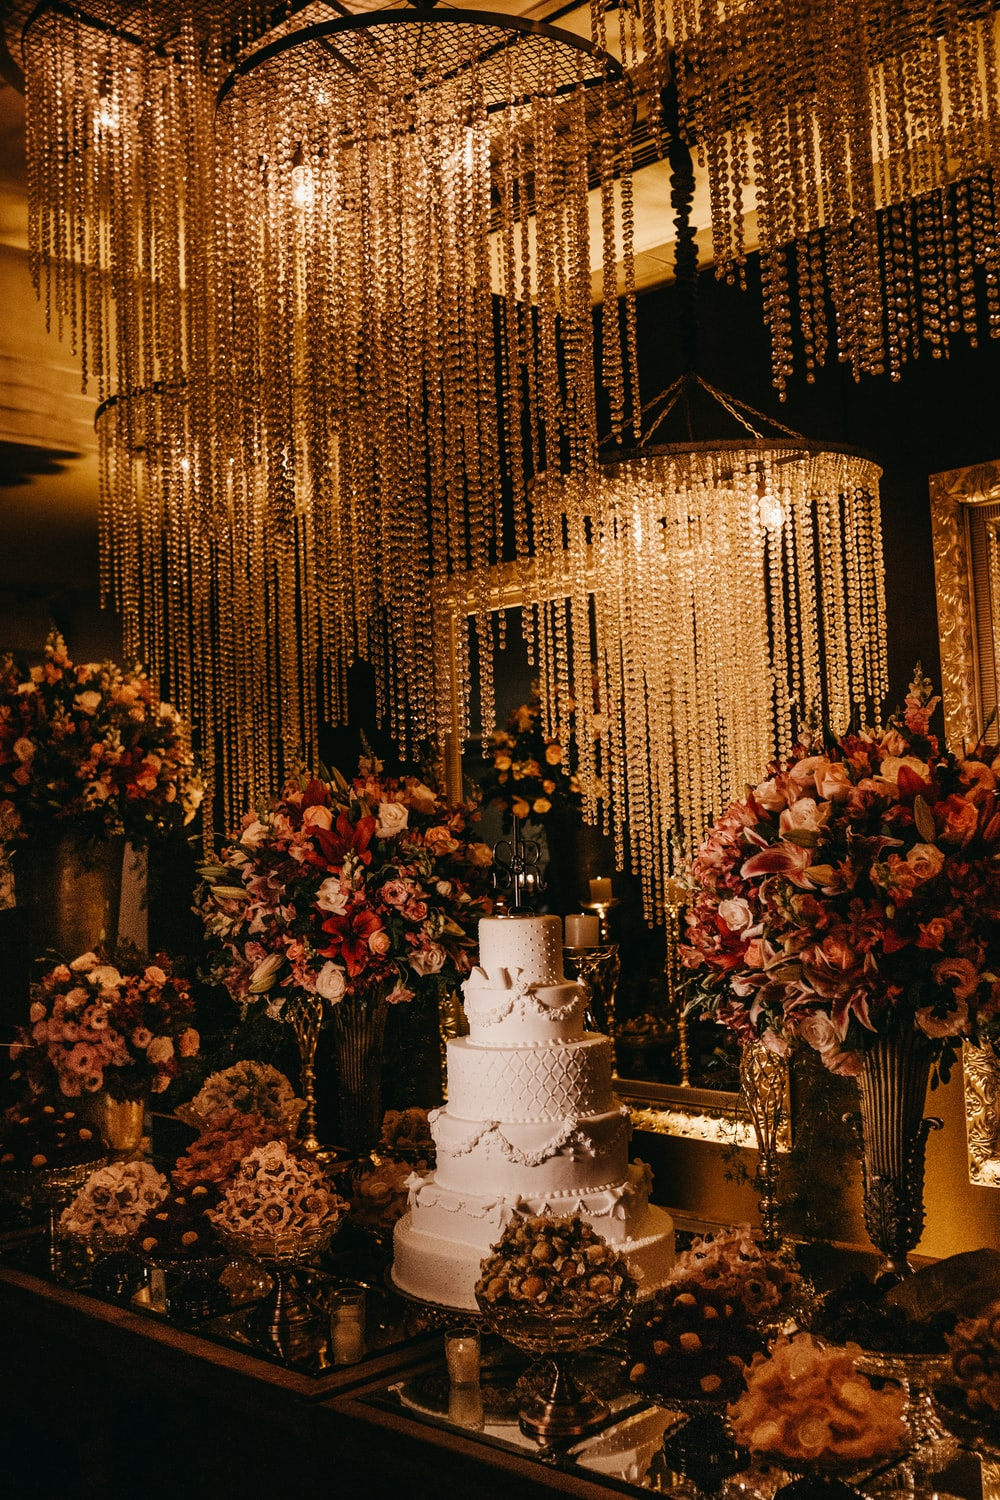 5 layer wedding cake surrounded with assorted-color flower arrangement with lighted chandeliers